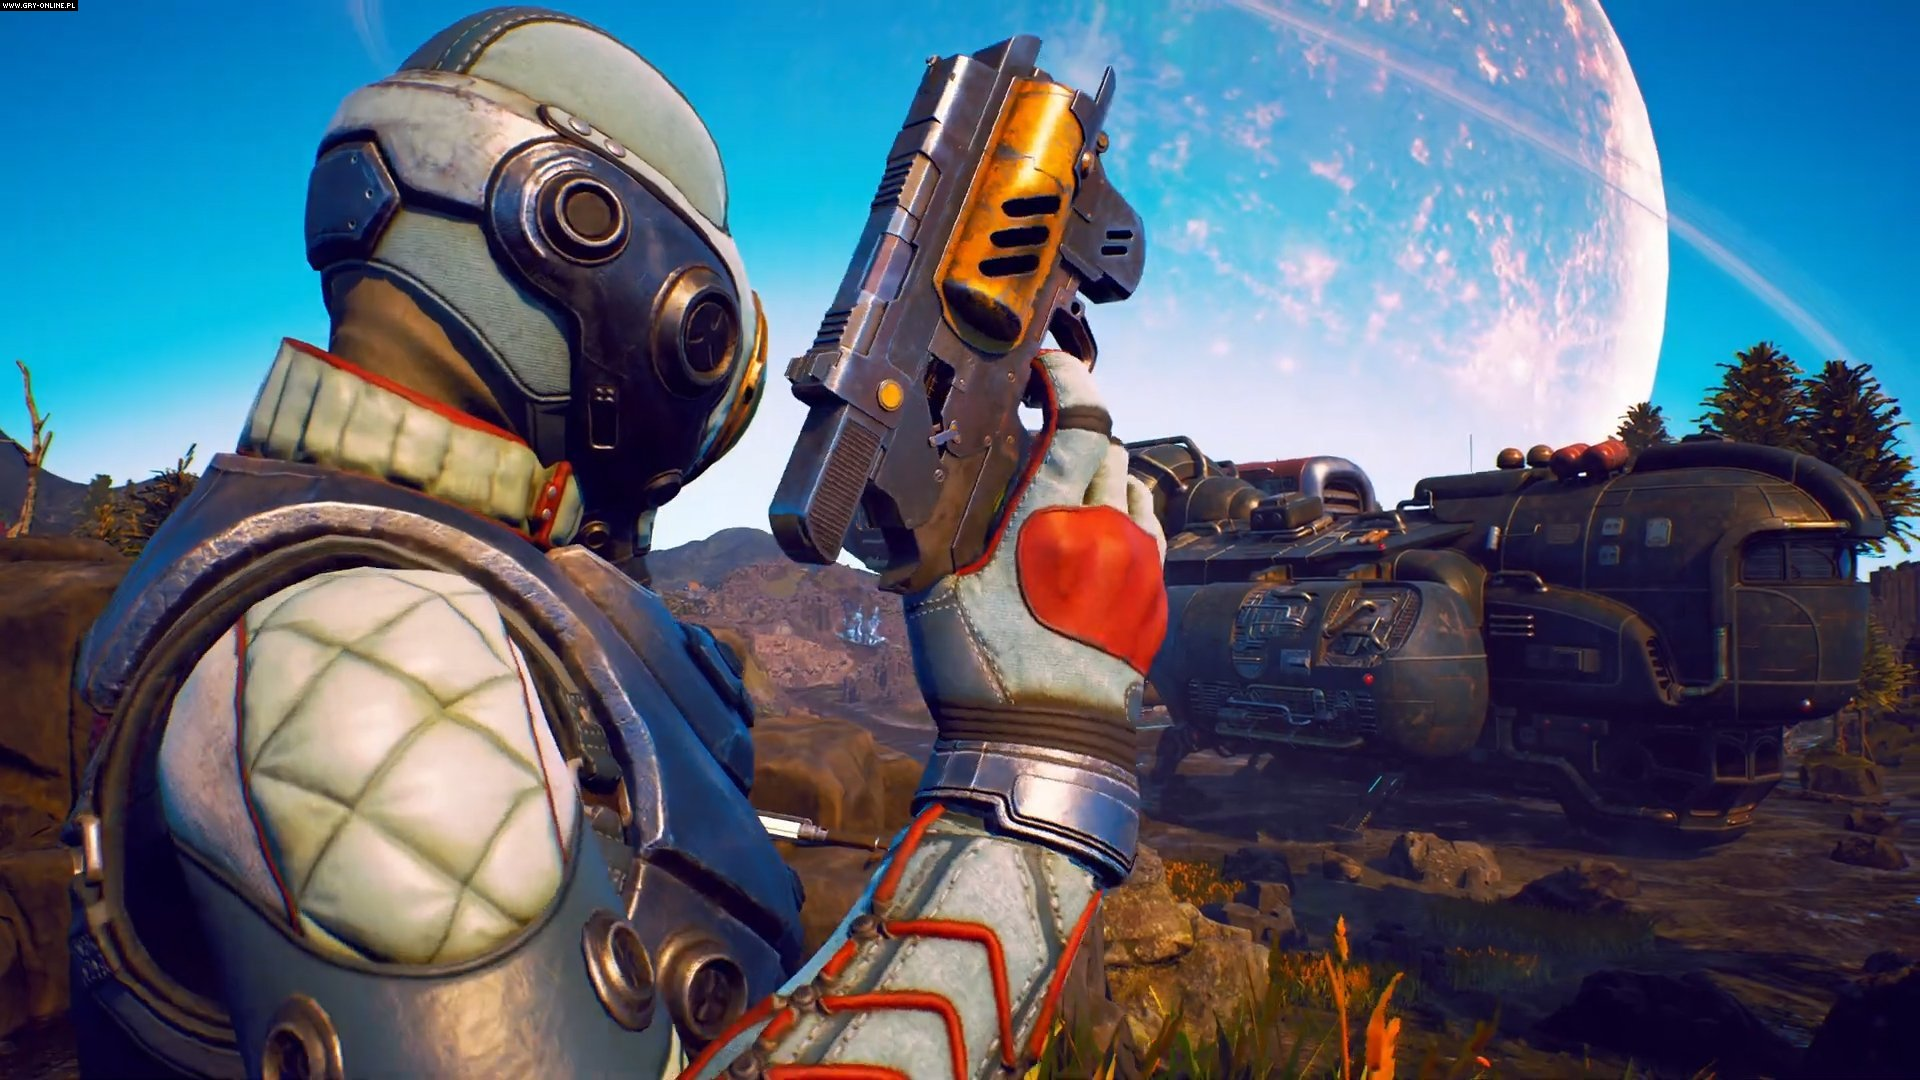 The Outer Worlds PC, PS4, XONE Games Image 9/21, Obsidian Entertainment, Private Division